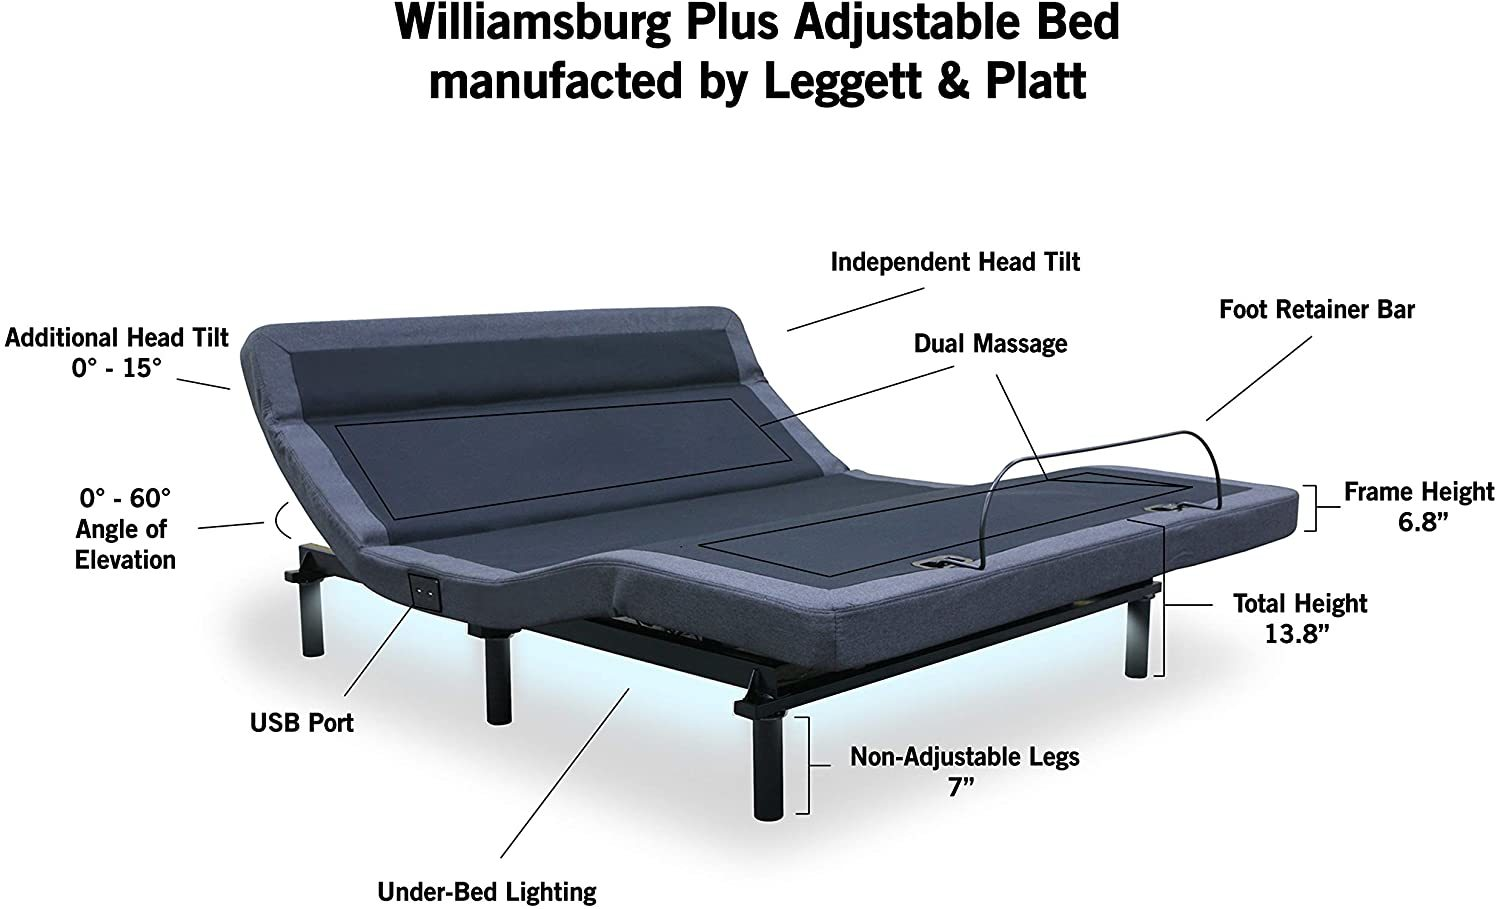 Williamsburg Plus - Best Adjustable Beds for Back Pain